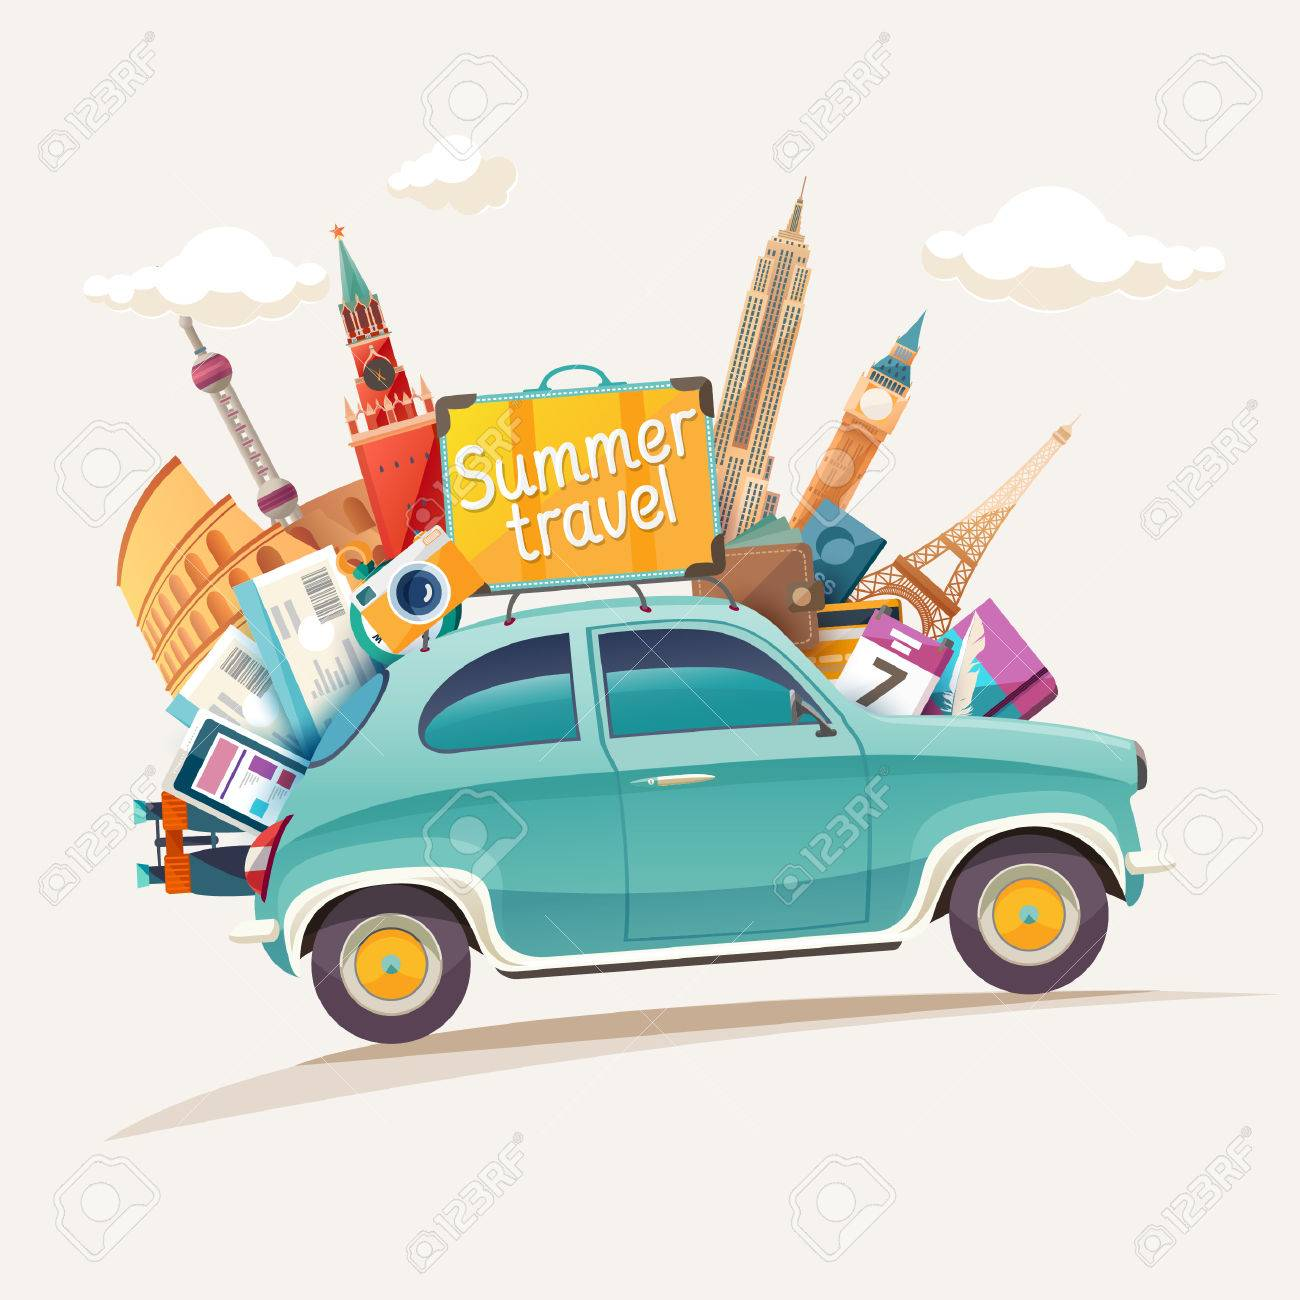 Summer travel illustration with retro car and architectural sights - 56583459